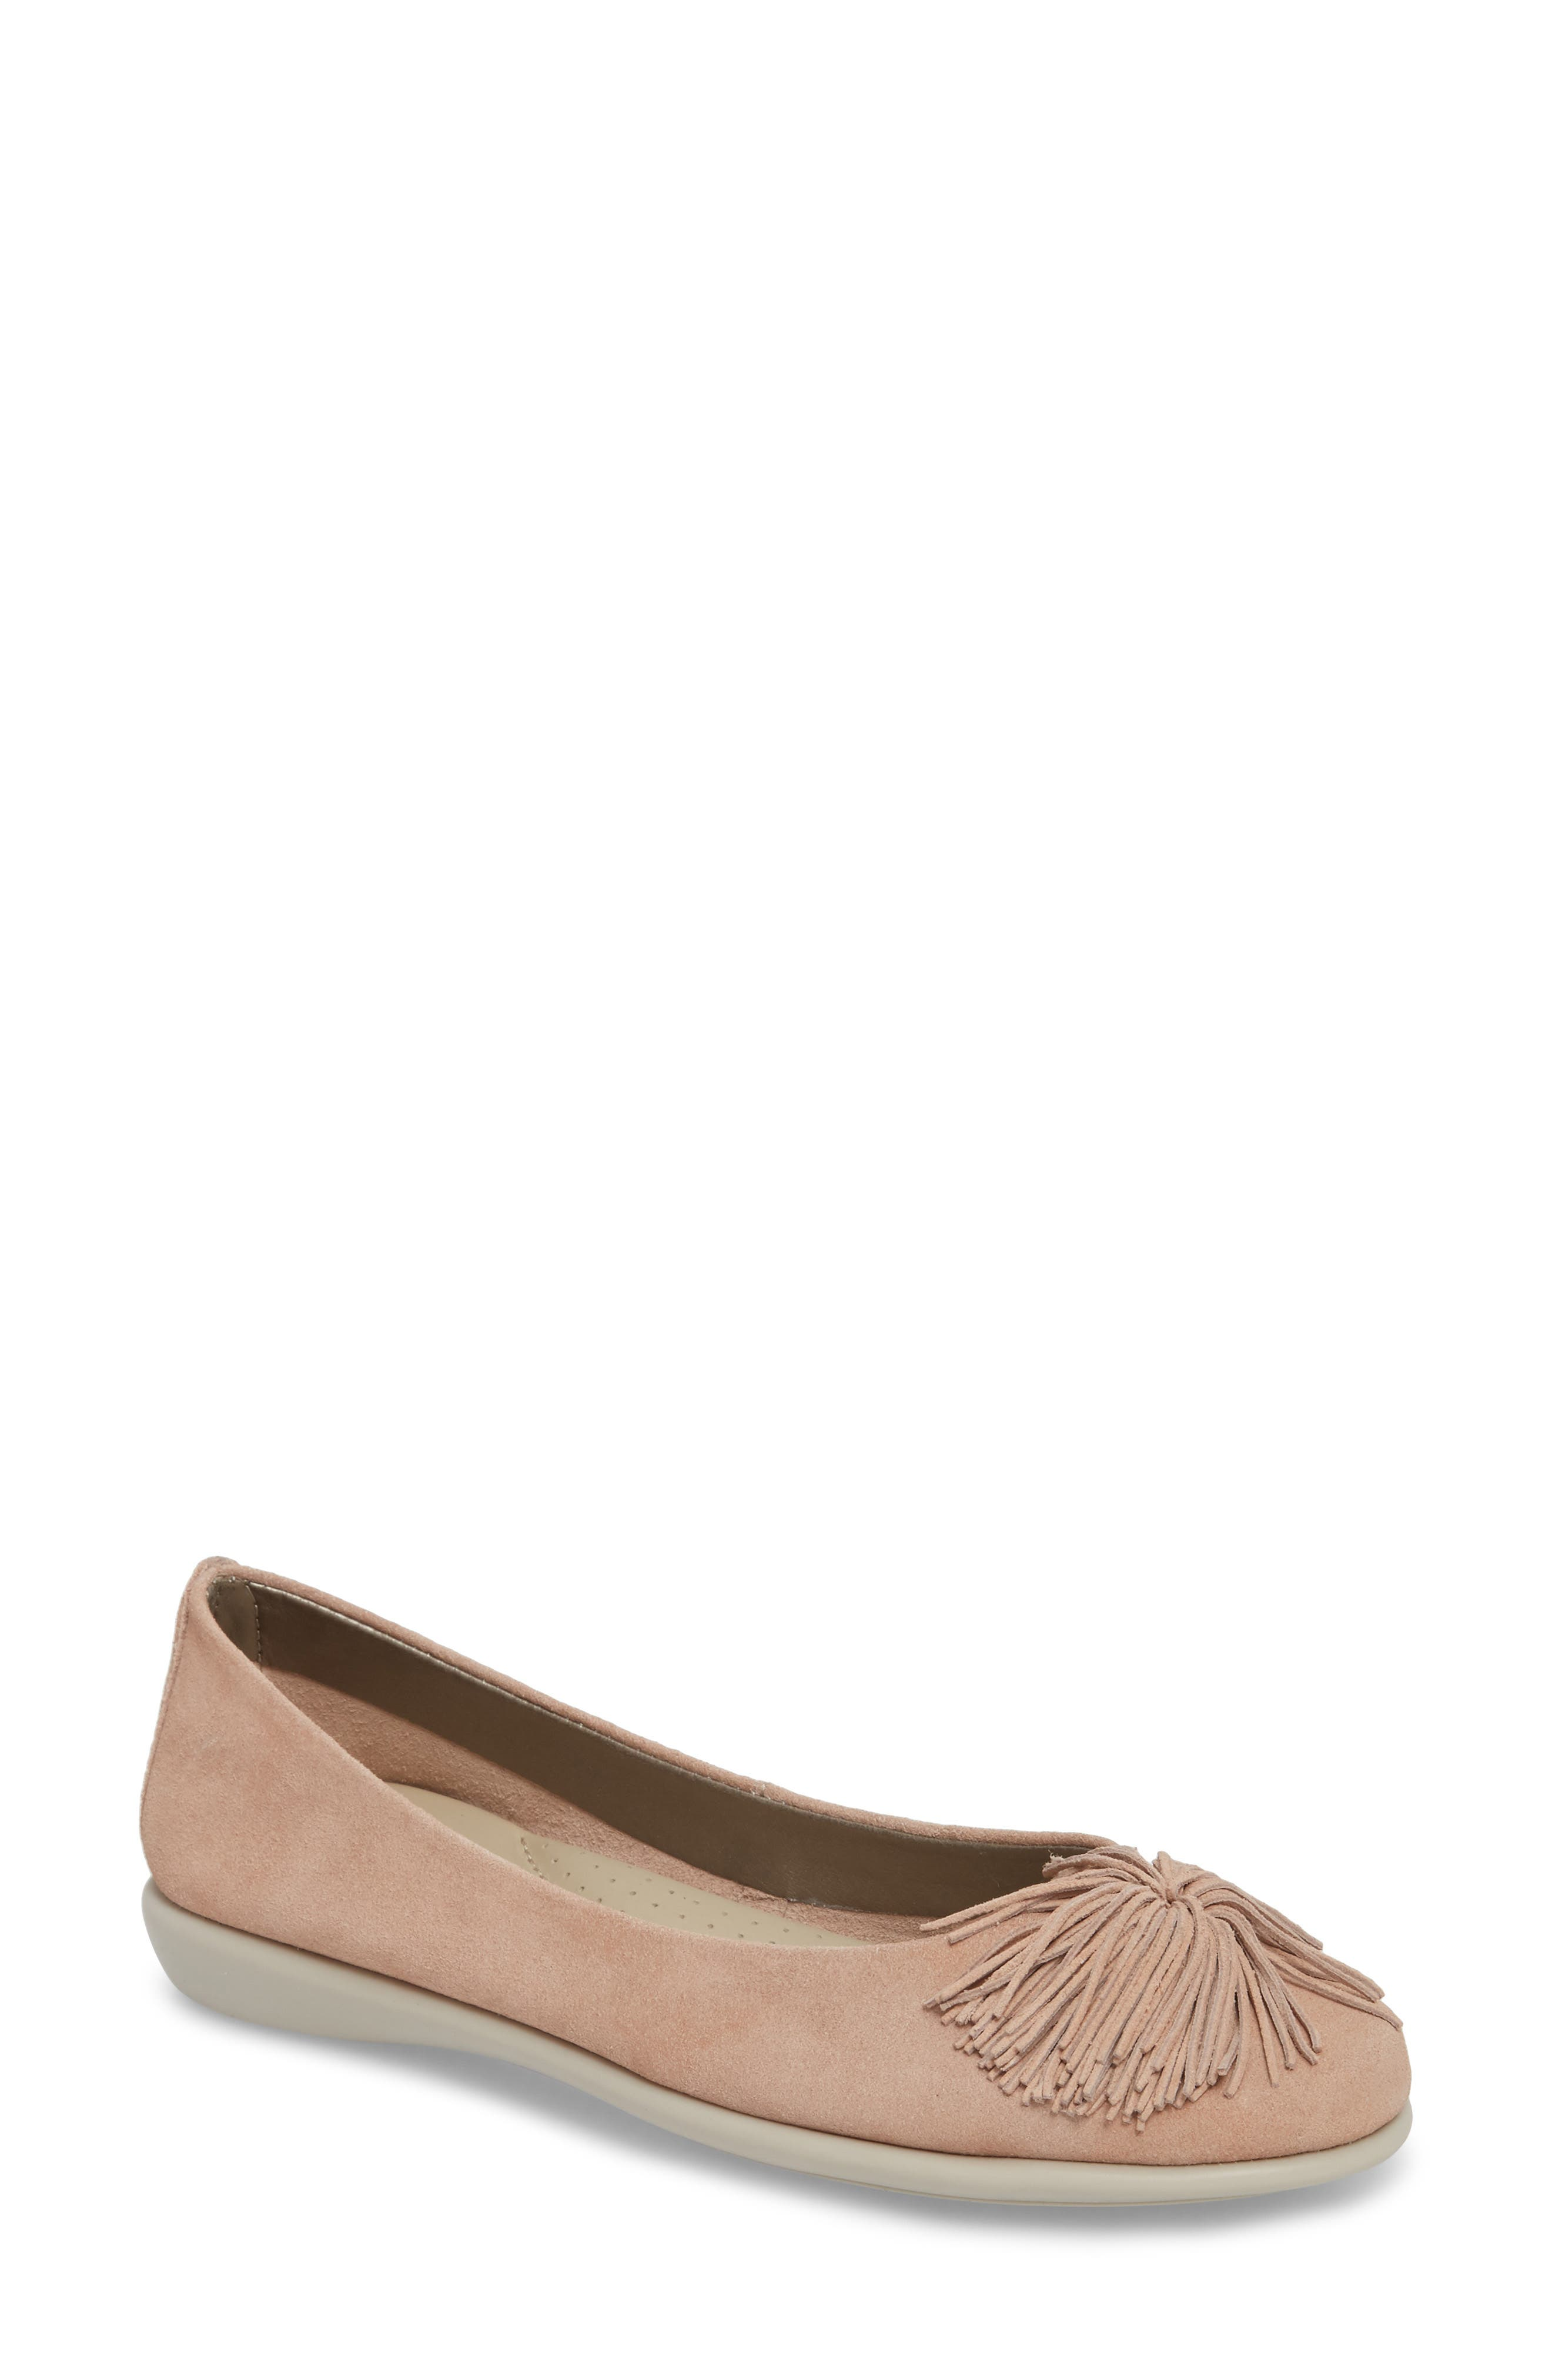 THE FLEXX Pompom Flat, Main, color, ROSE GOLD LEATHER